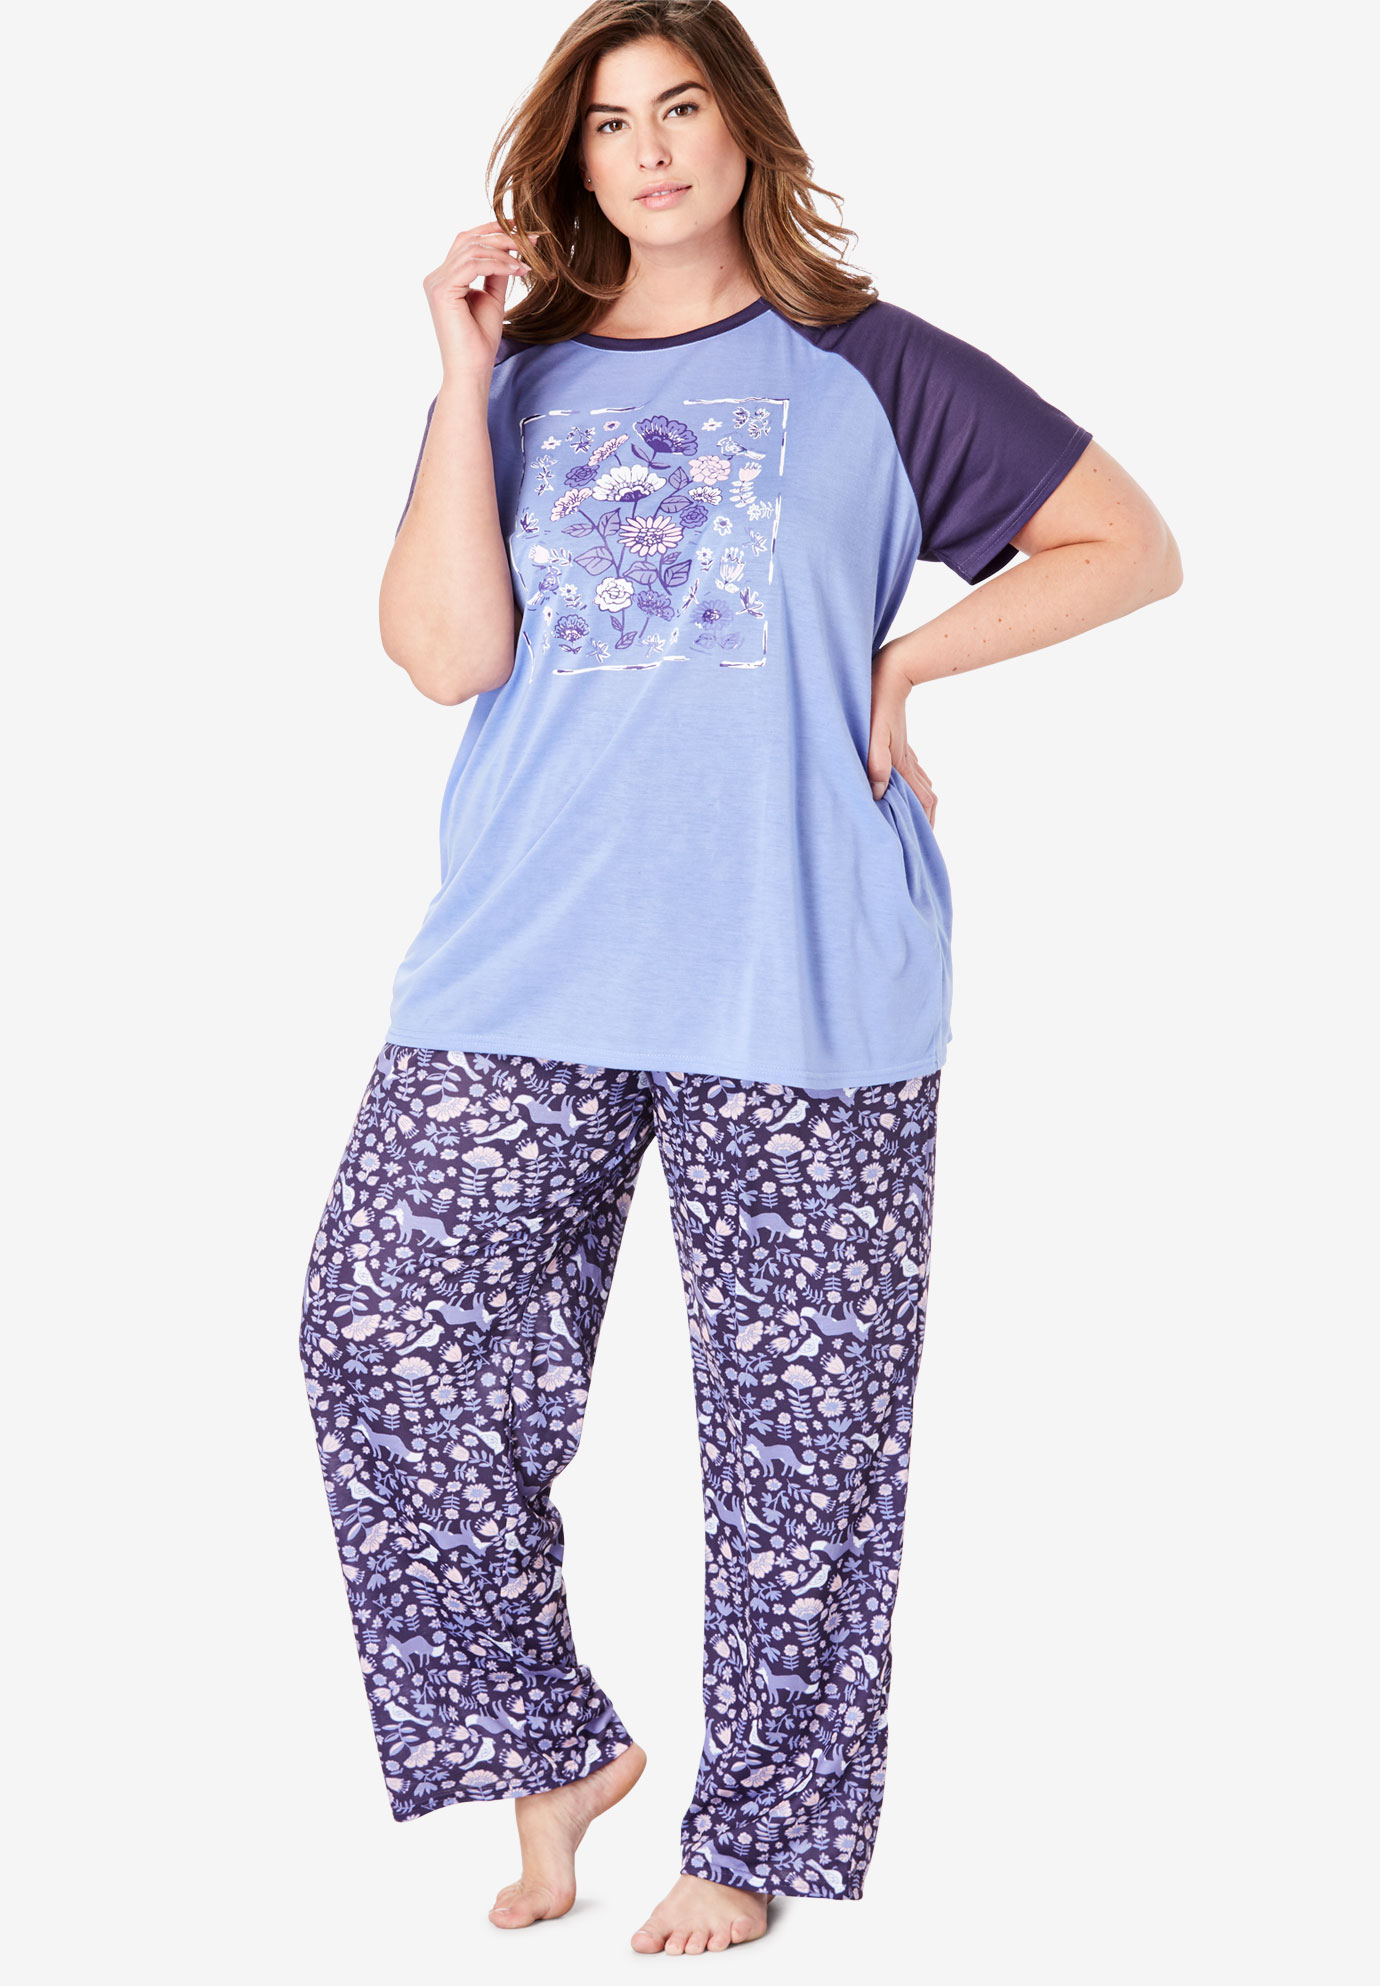 Cool Dreams Baseball Tee Pajama Set by Dreams & Co.®,